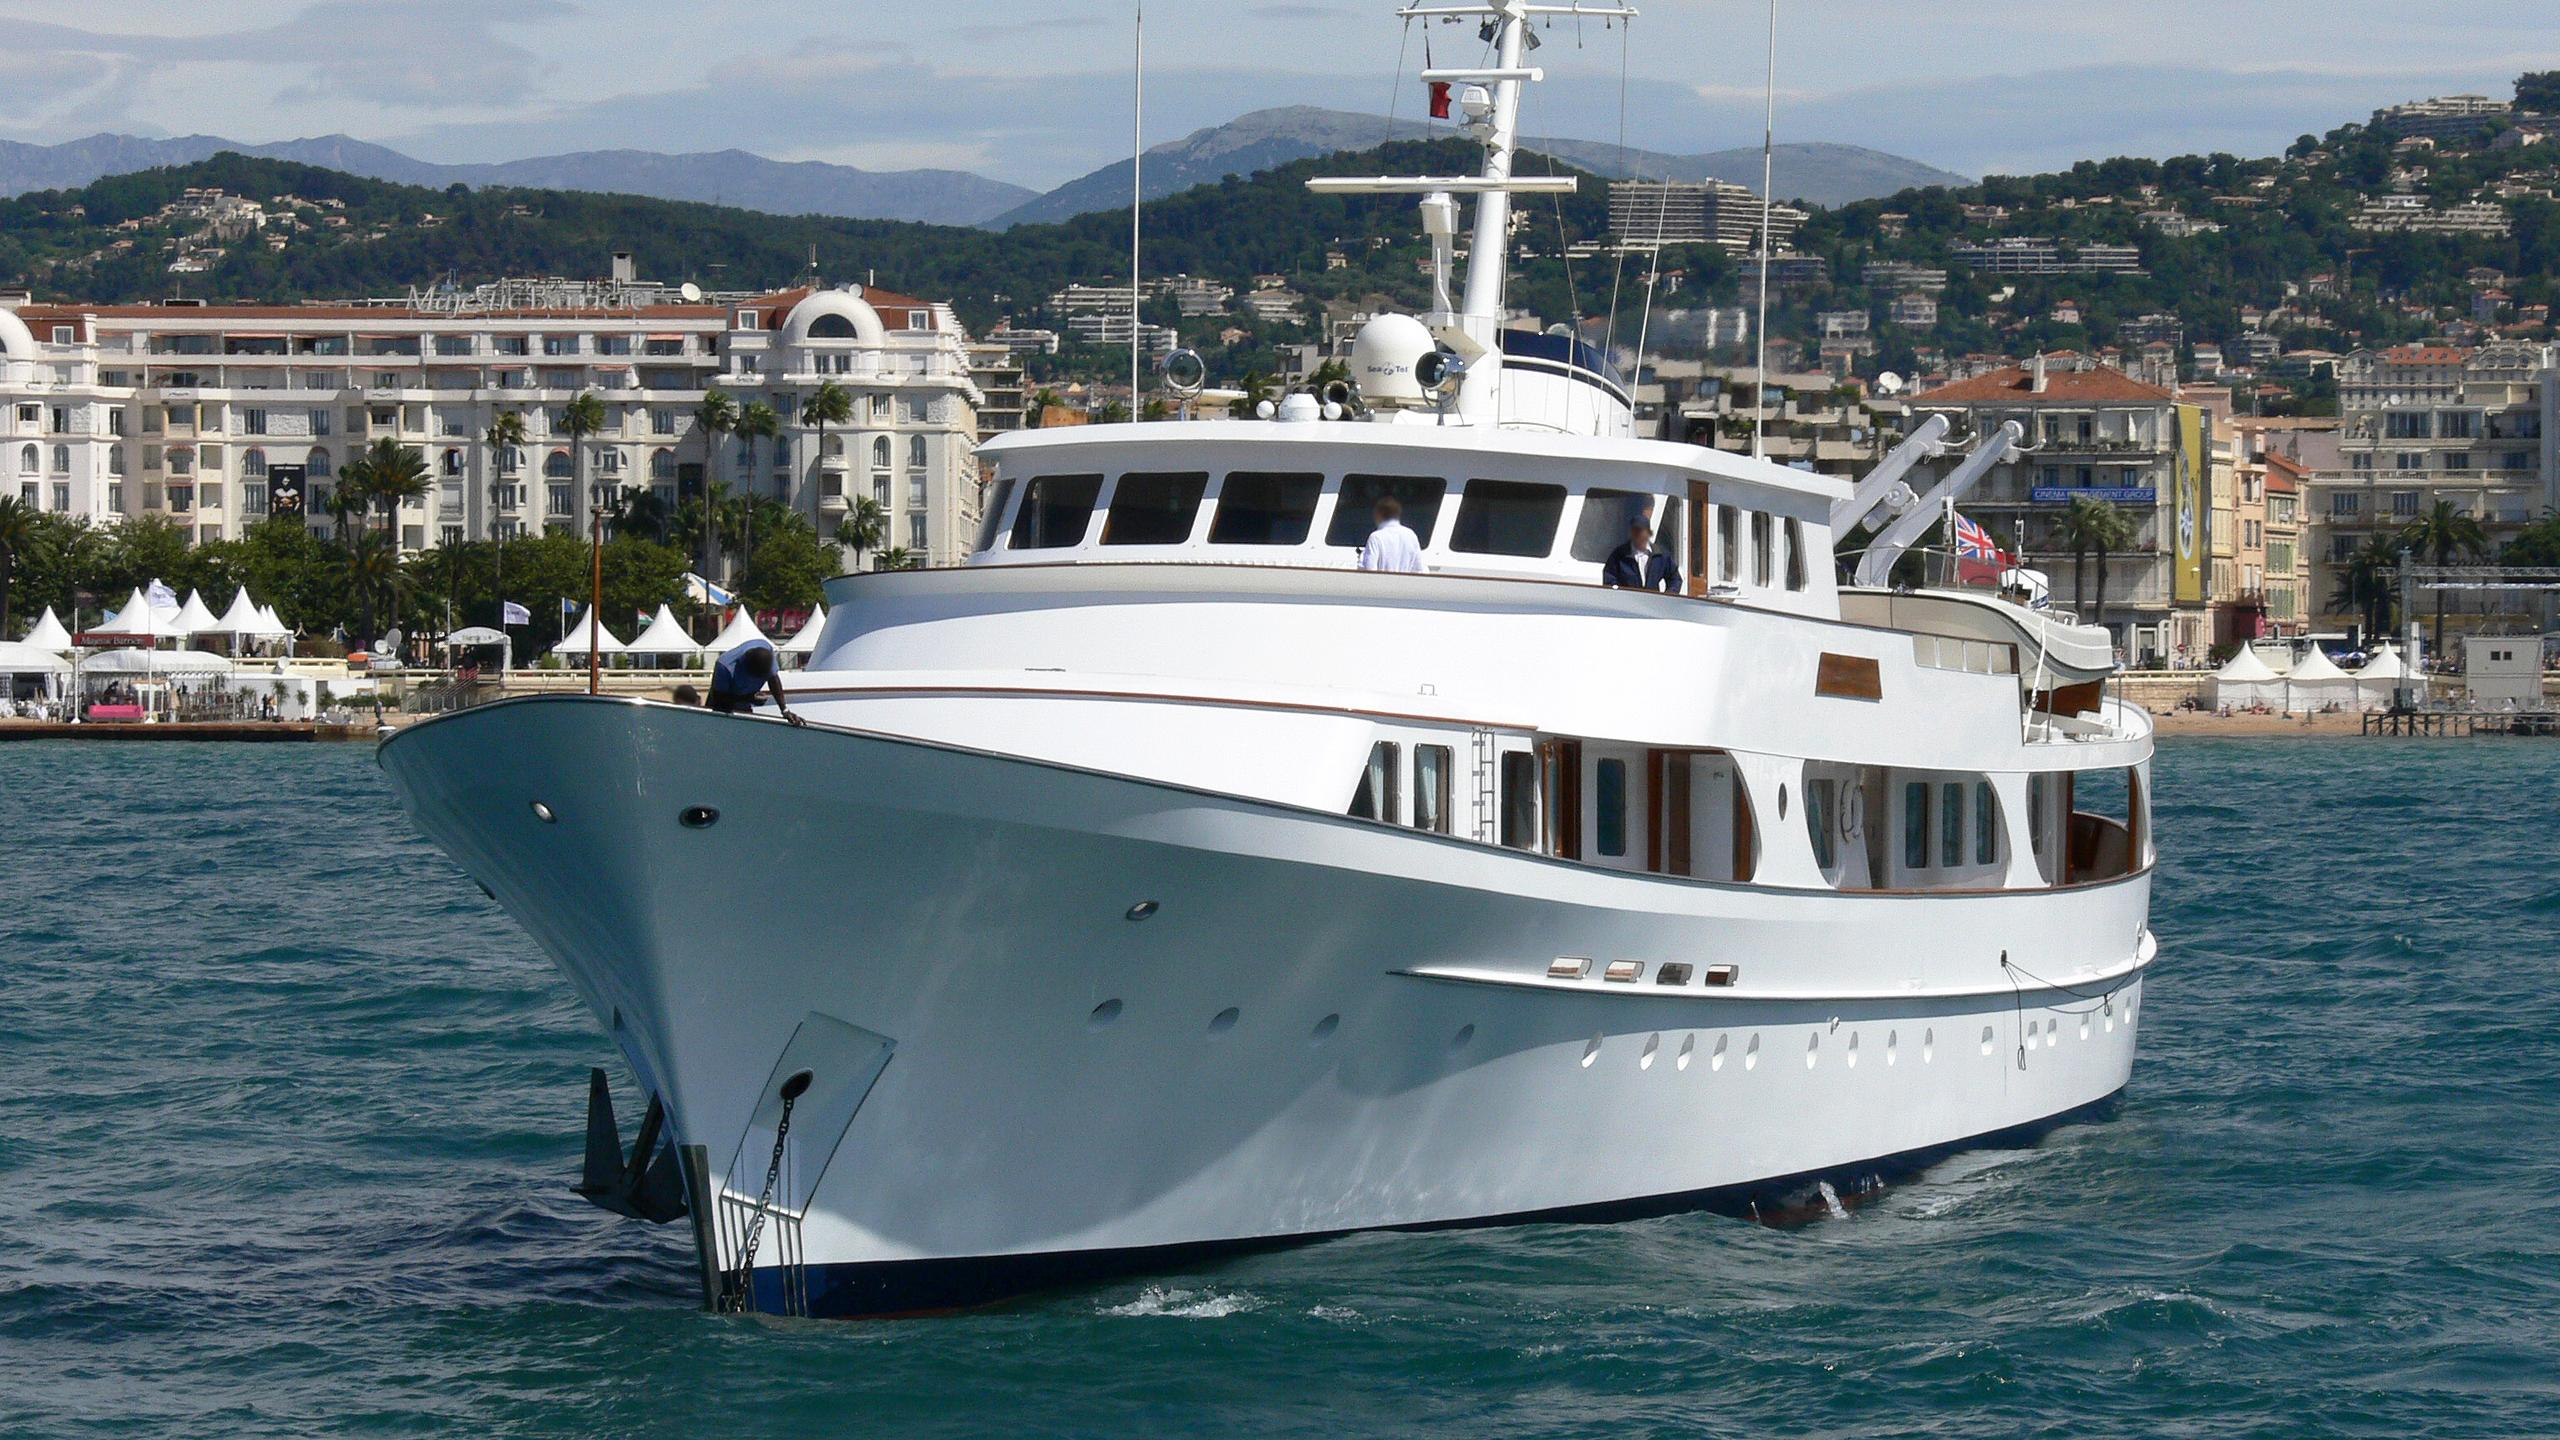 secret-life-motor-yacht-feadship-1973-45m-bow